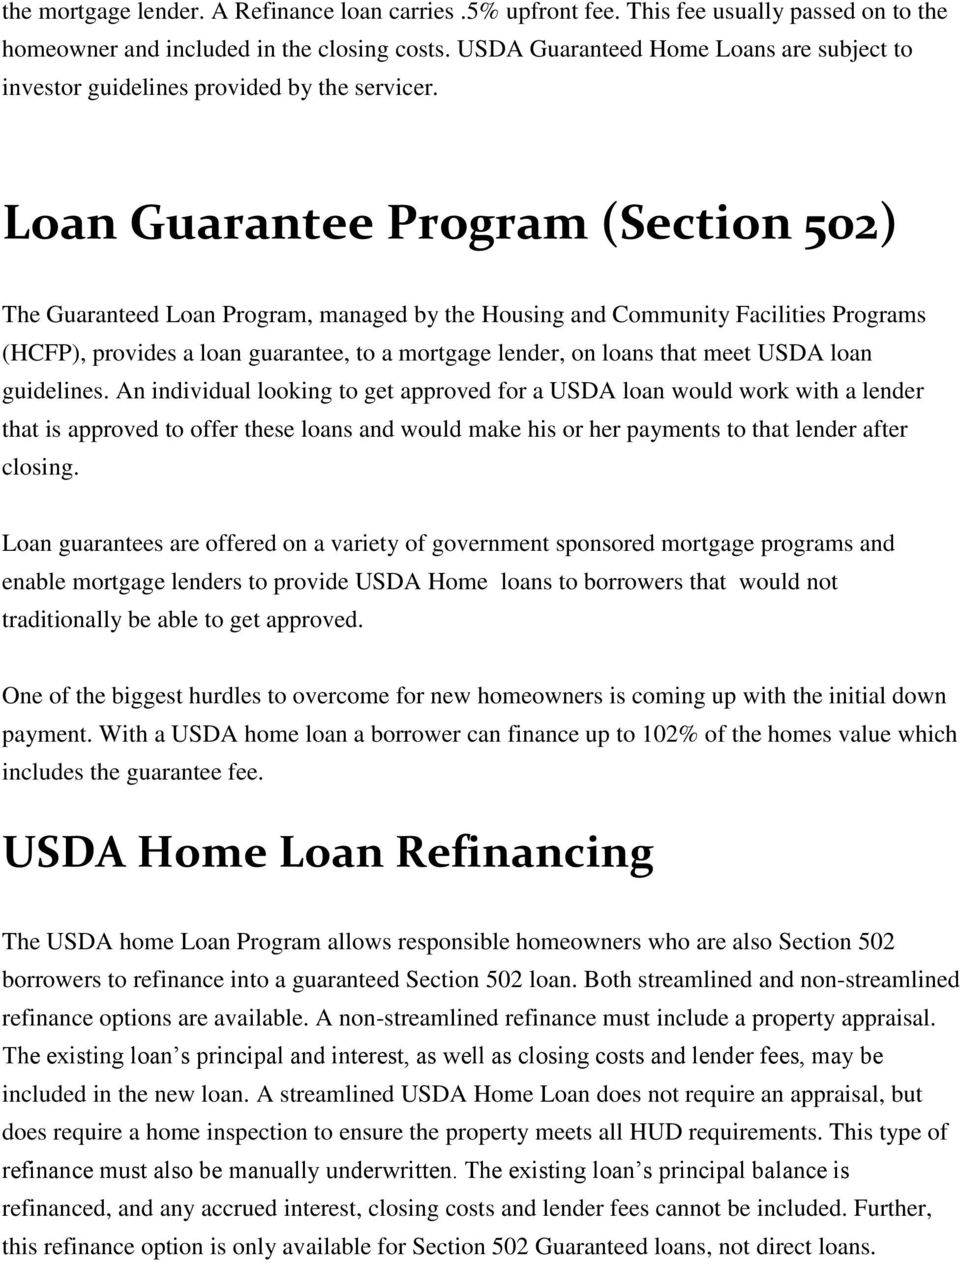 Loan Guarantee Program (Section 502) The Guaranteed Loan Program, managed by the Housing and Community Facilities Programs (HCFP), provides a loan guarantee, to a mortgage lender, on loans that meet